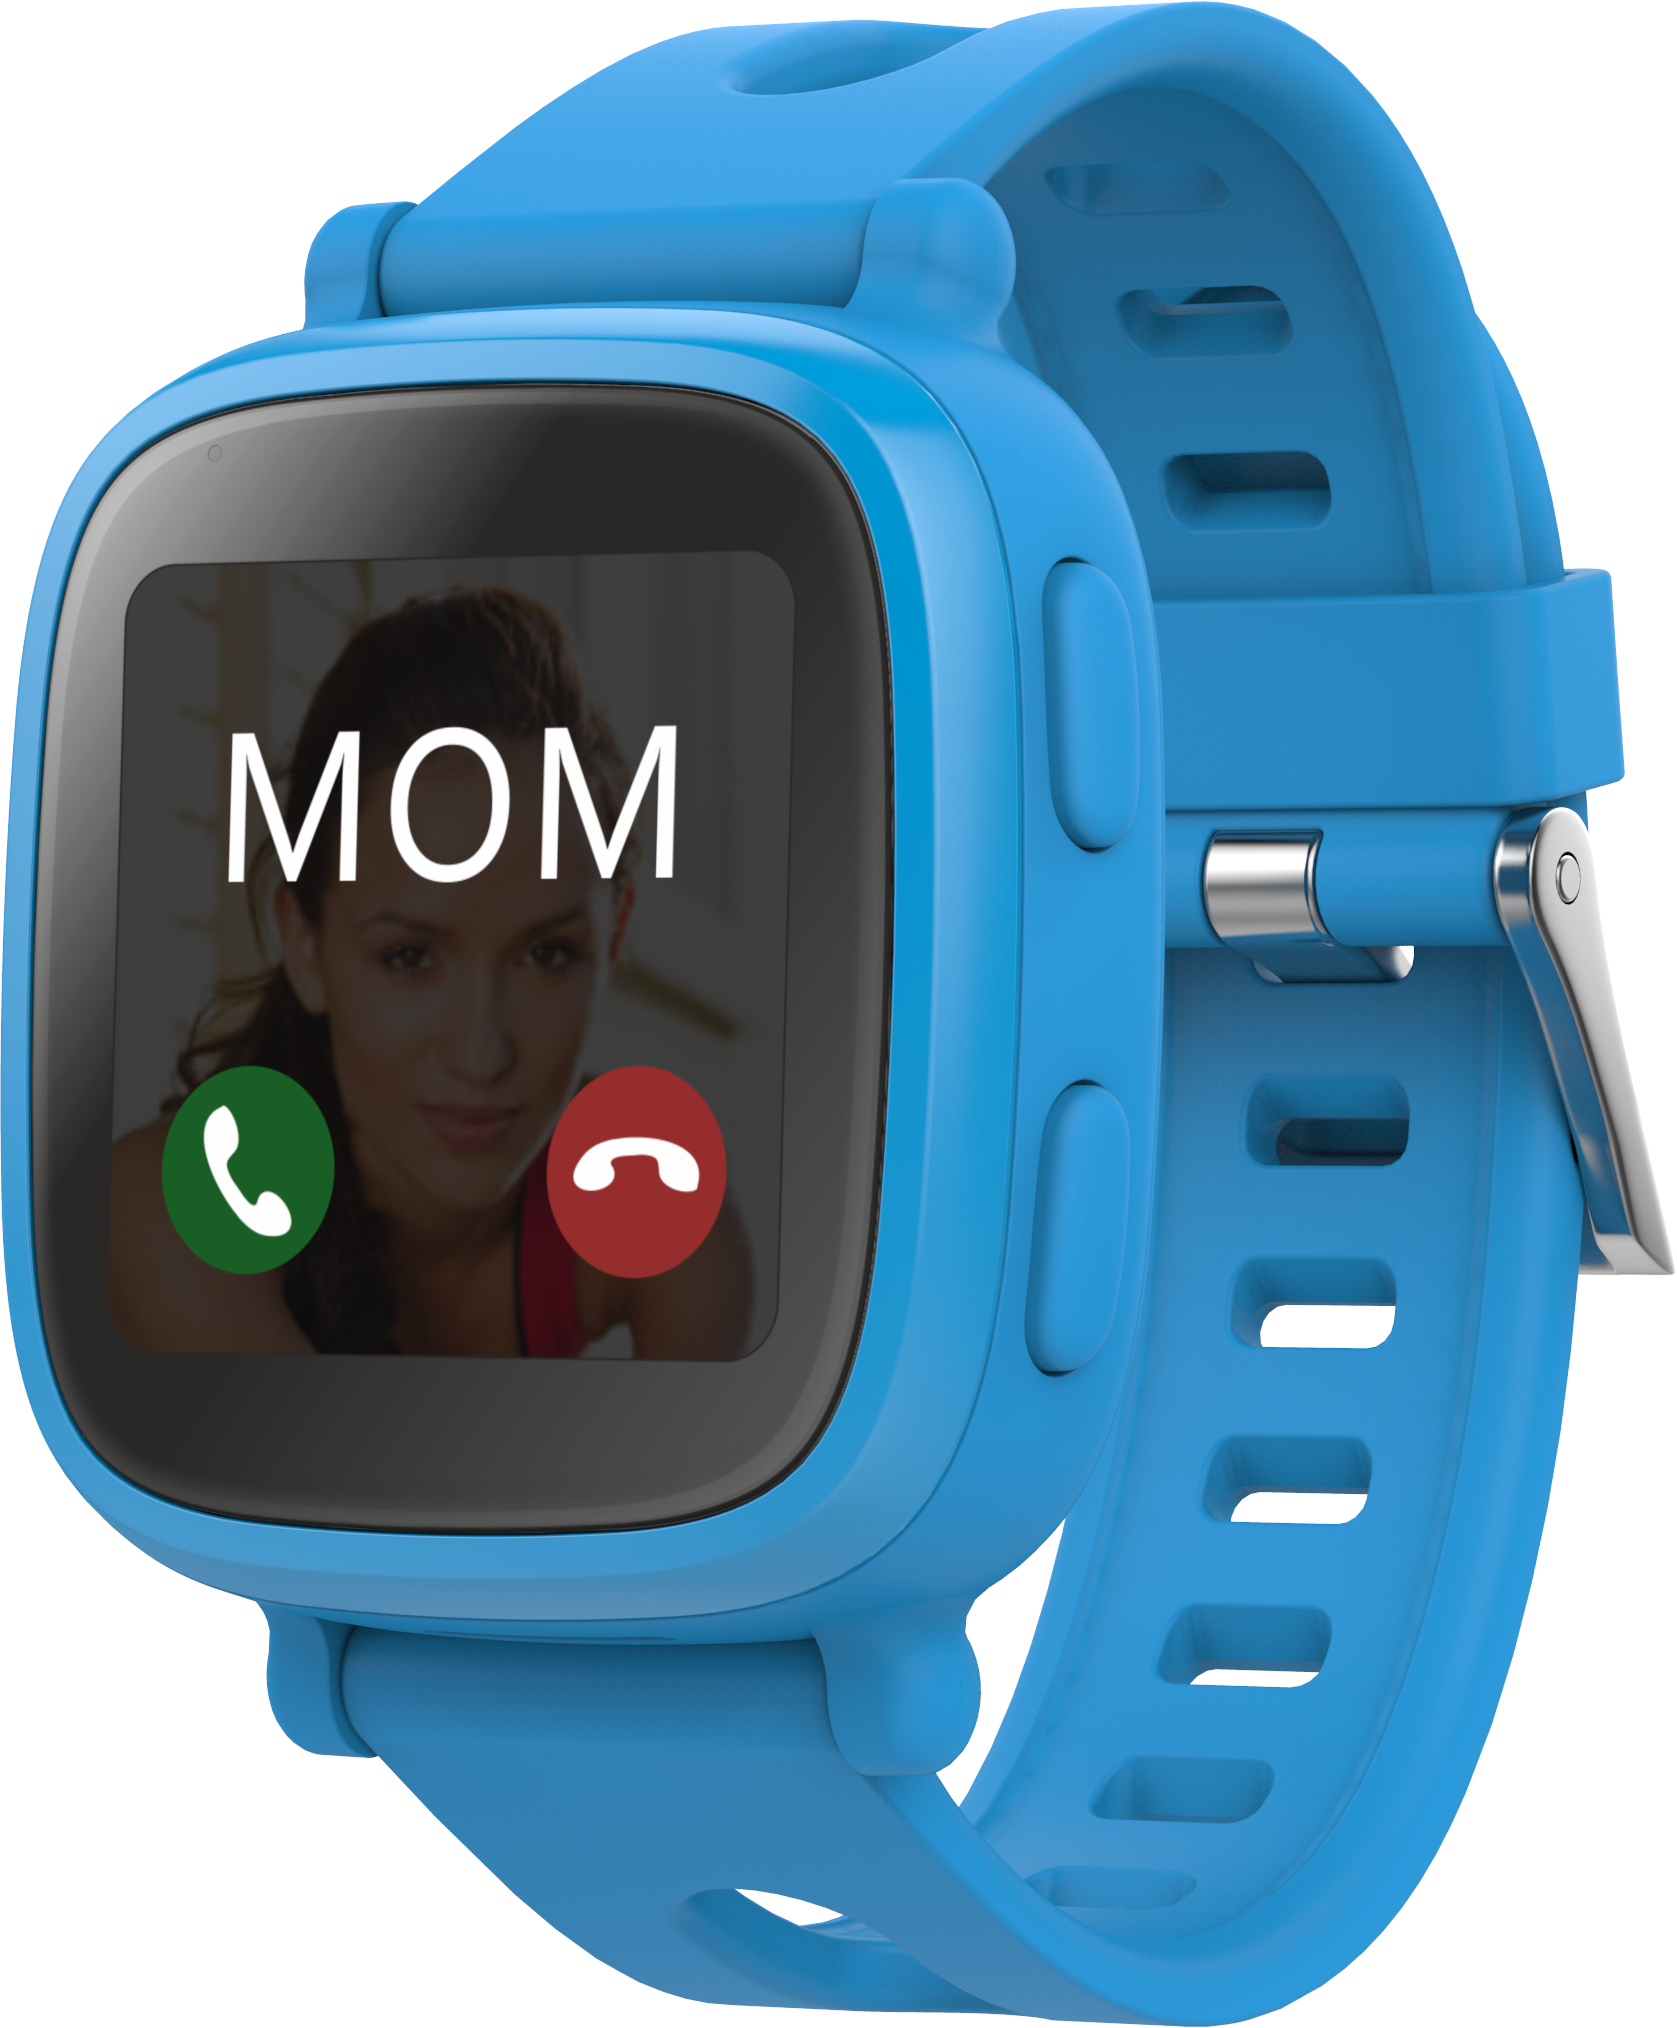 Oaxis Watchphone is useful for keeping your children safe from child abduction.